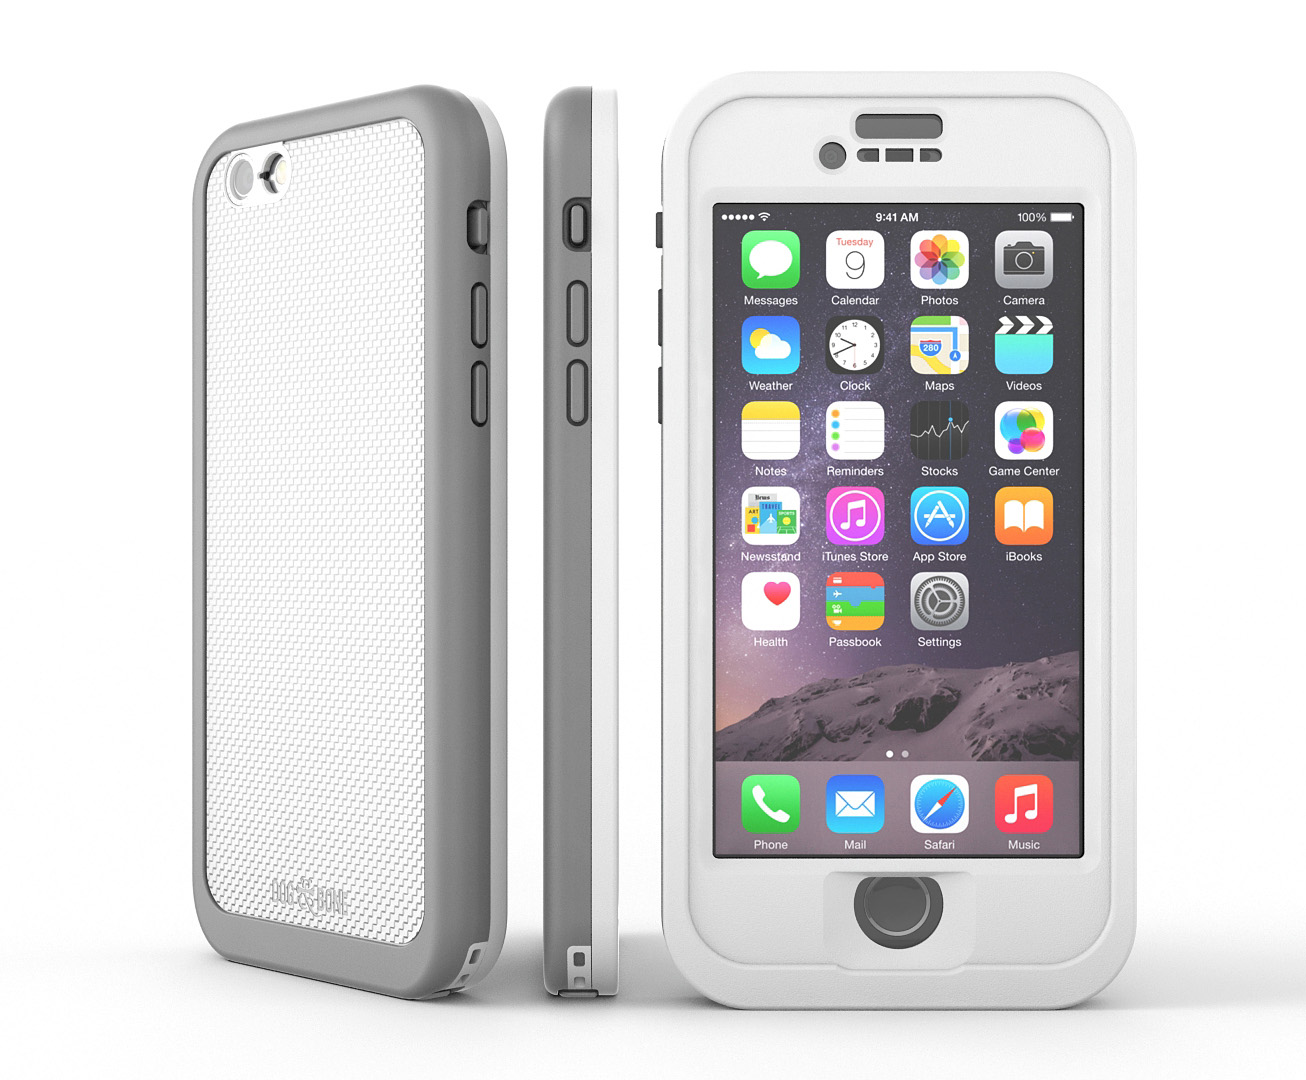 new product 9855f 34320 Waterproof Case for iPhone 6 | Dog & Bone Cases